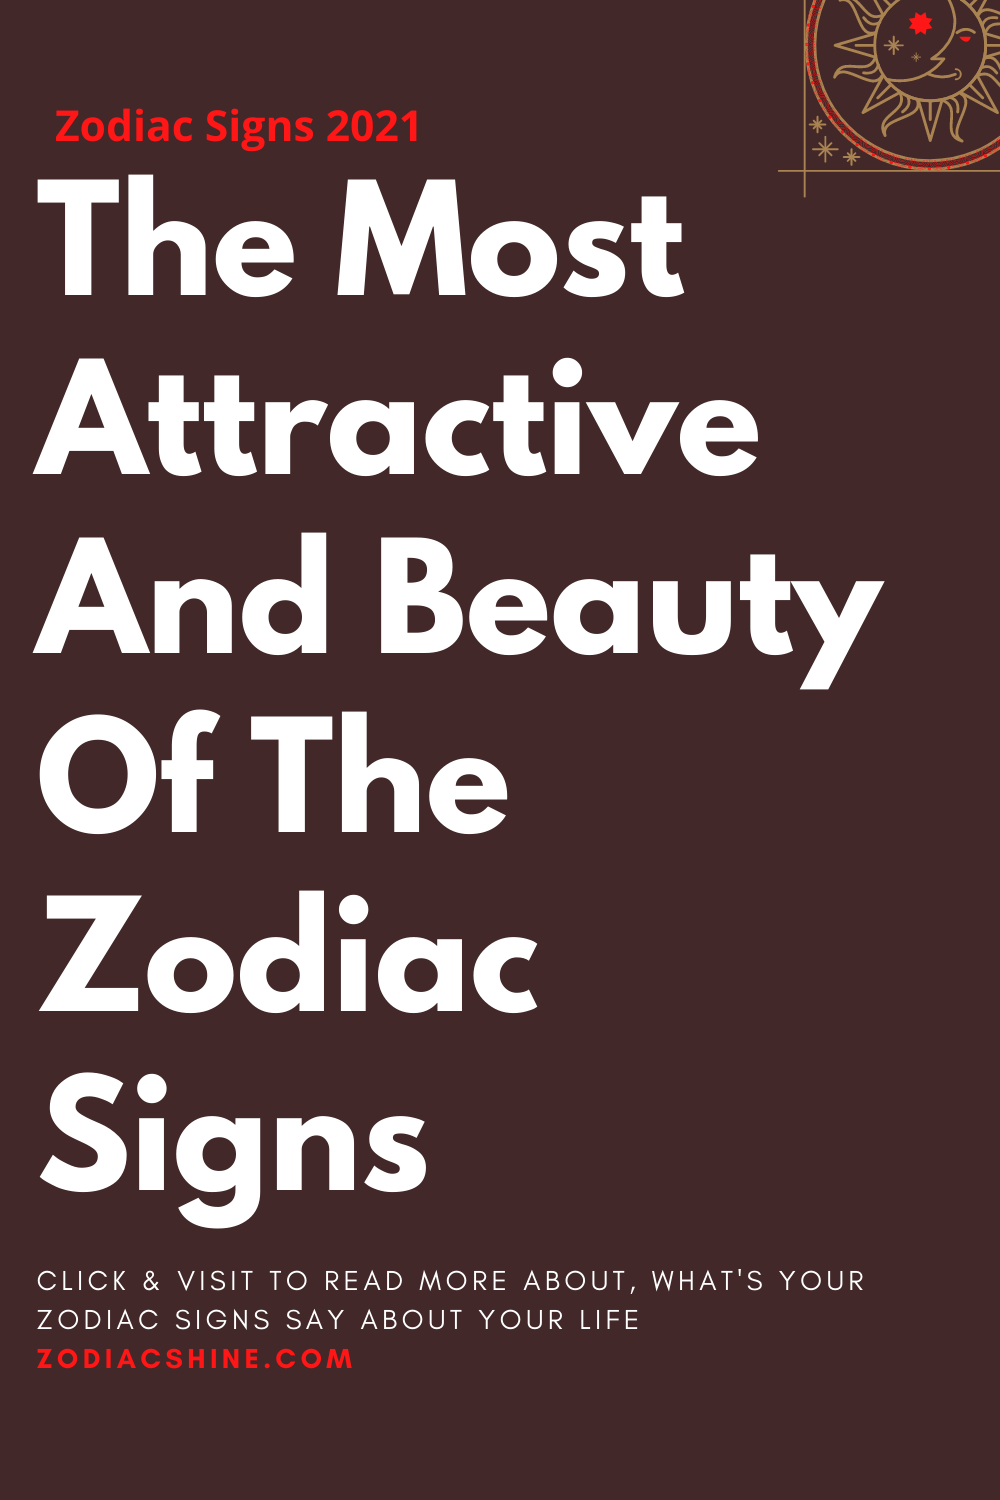 The Most Attractive And Beauty Of The Zodiac Signs